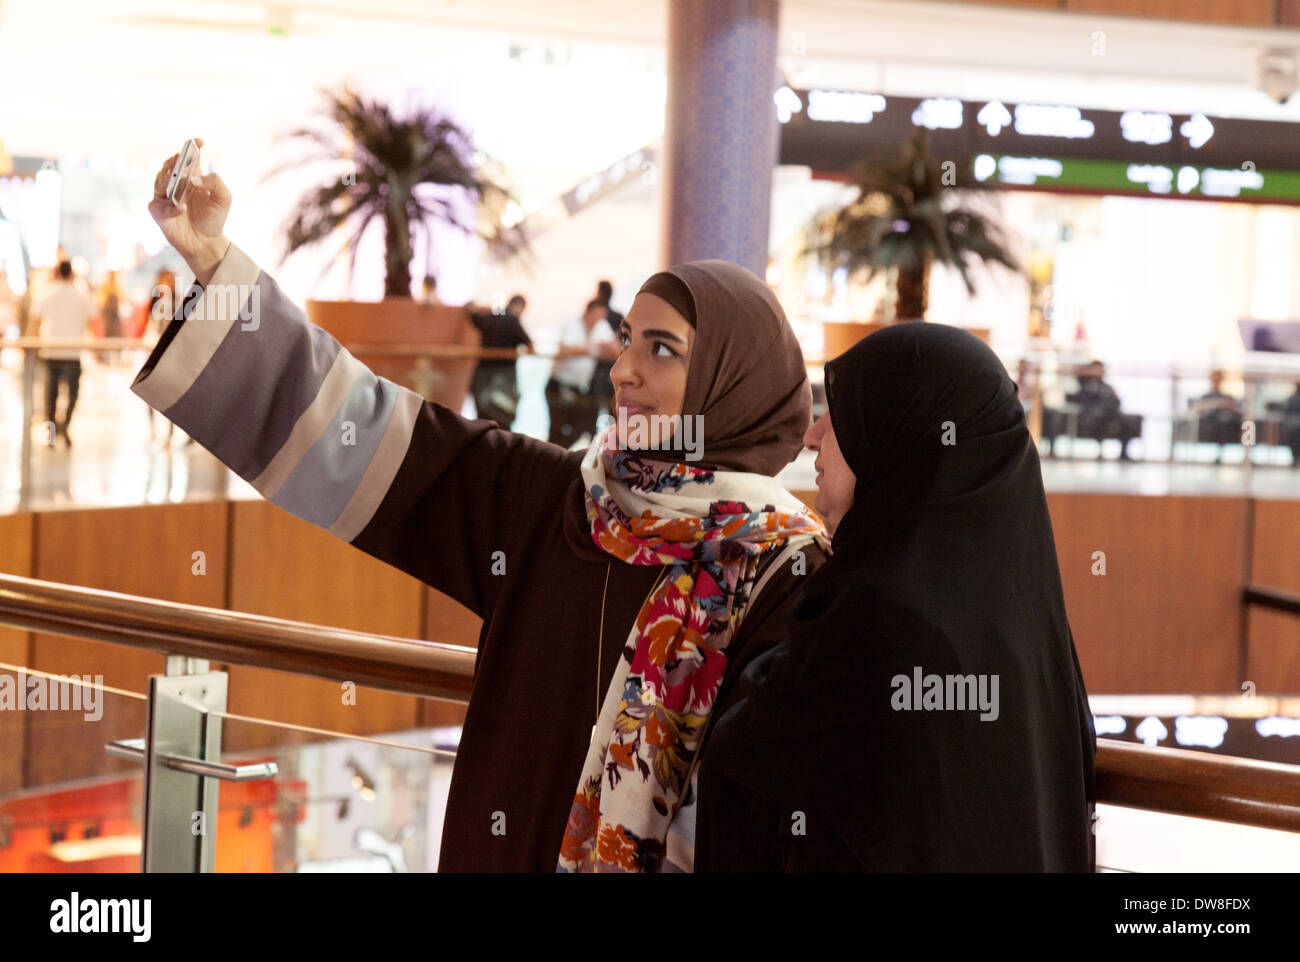 Two muslim arab women taking a selfie on a mobile phone, the Dubai Mall, UAE, United Arab Emirates Middle East - Stock Image